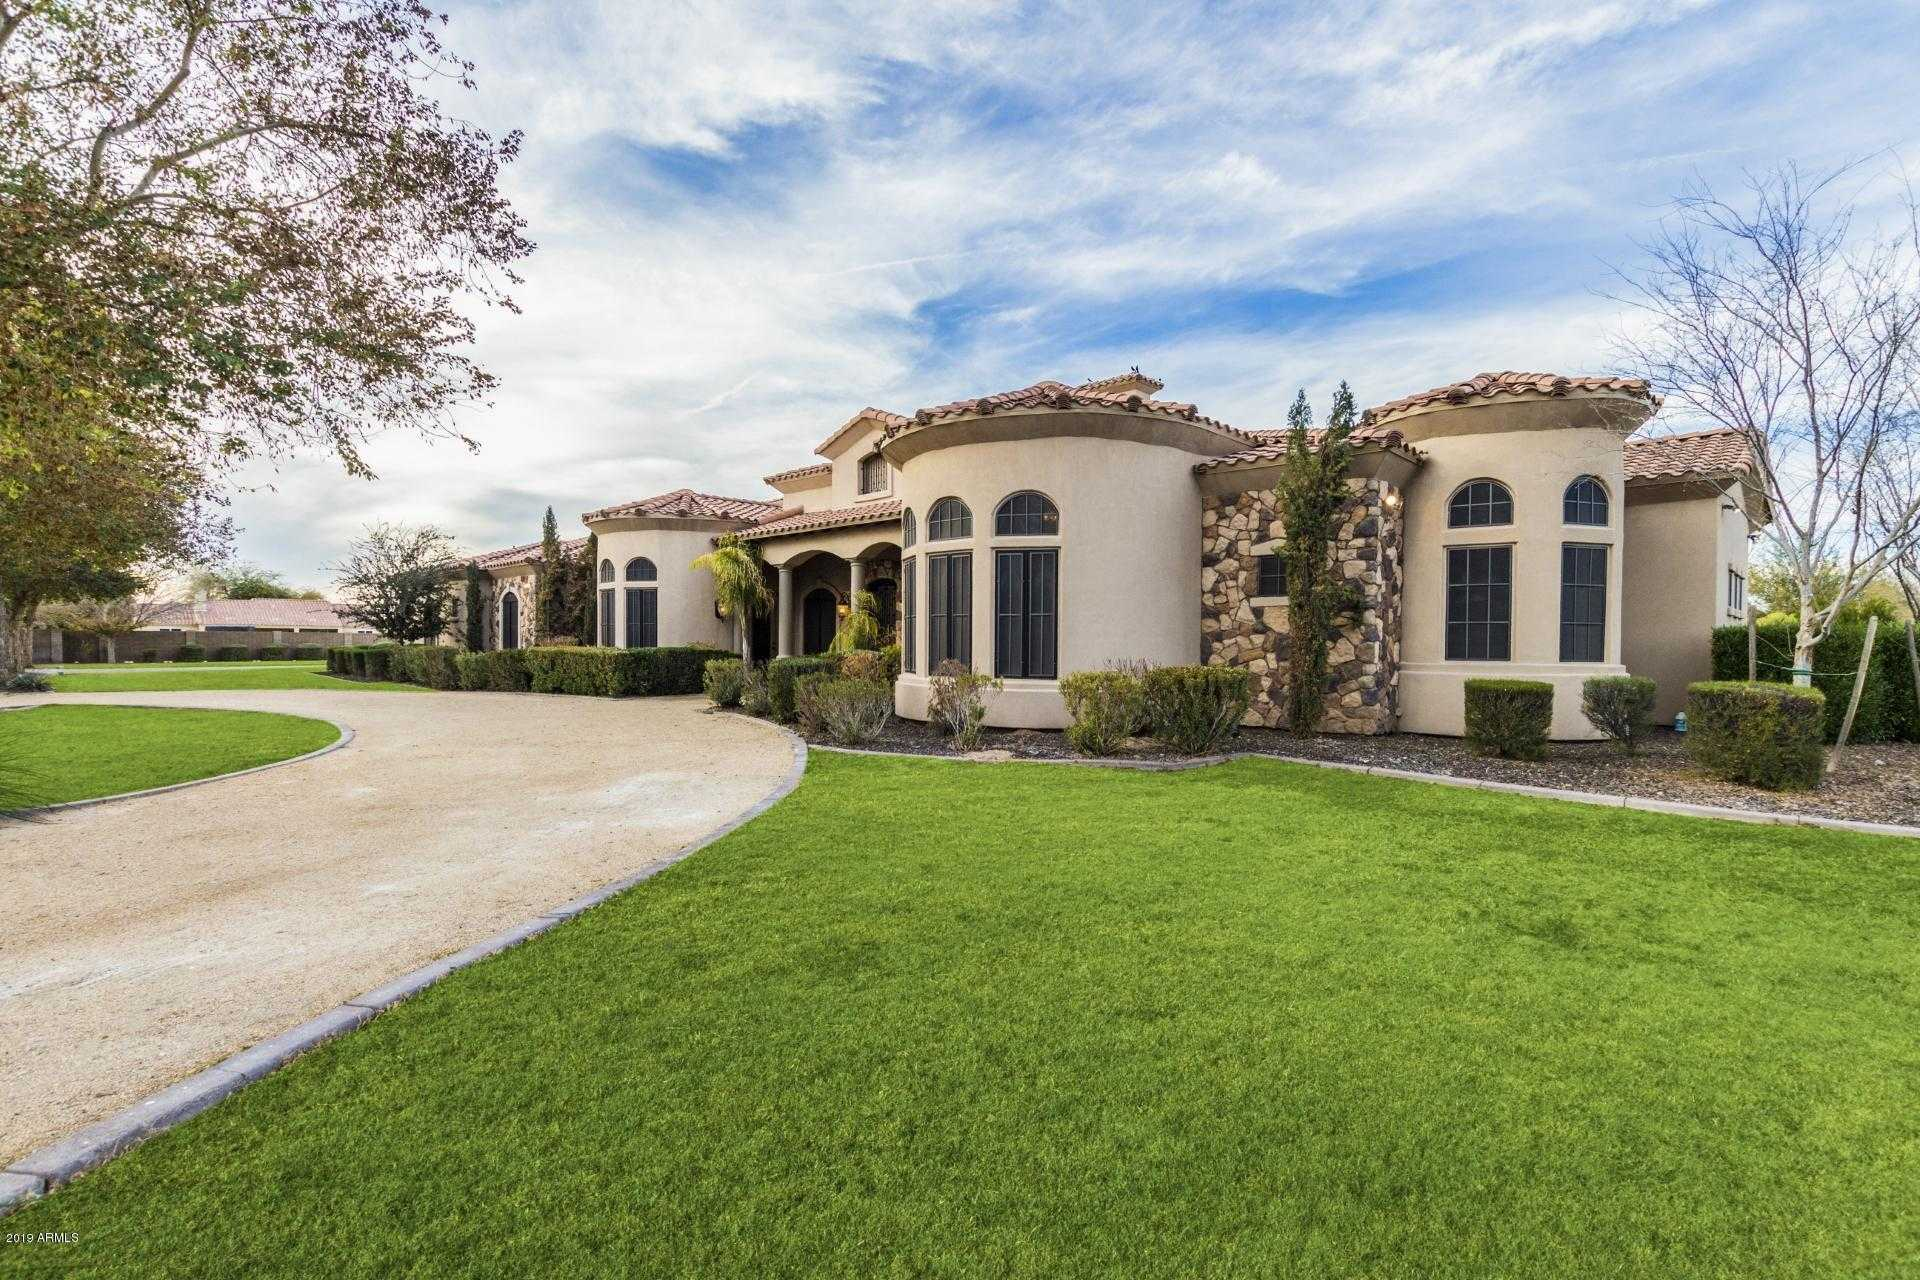 $1,195,000 - 5Br/4Ba - Home for Sale in Private Custom Estate, Chandler